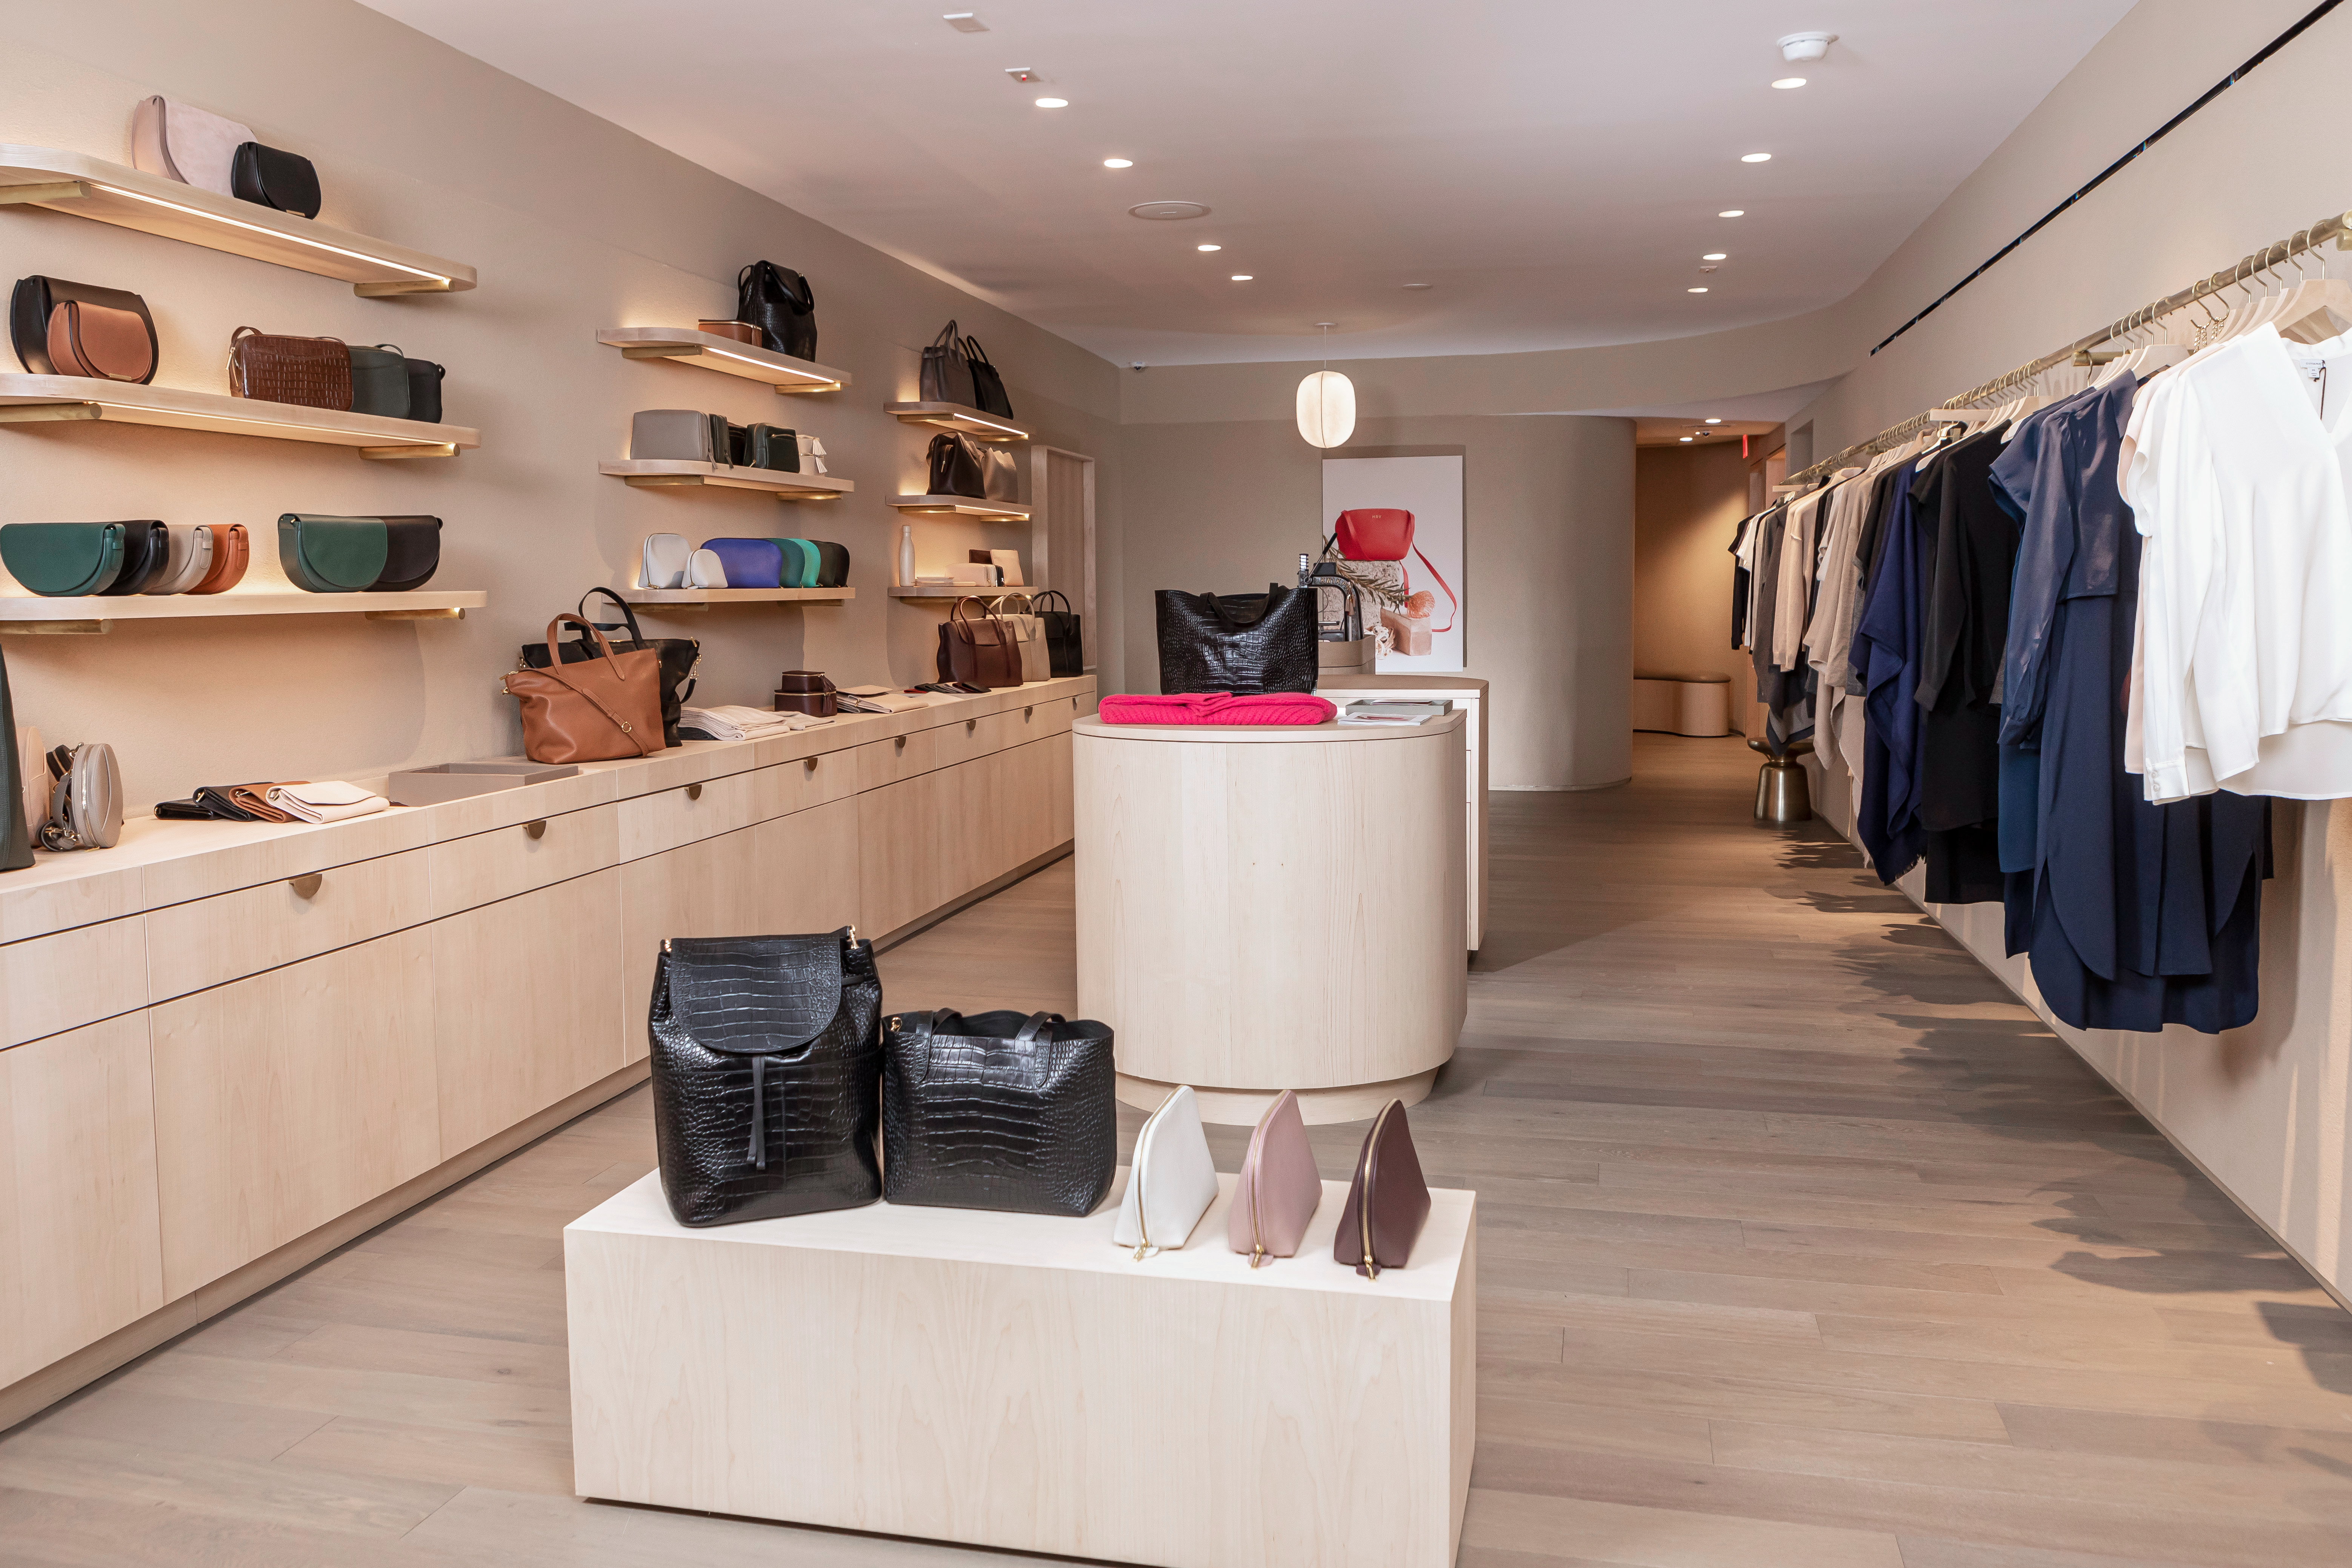 Less Is More Is The Mantra At Cuyana The Boston Globe